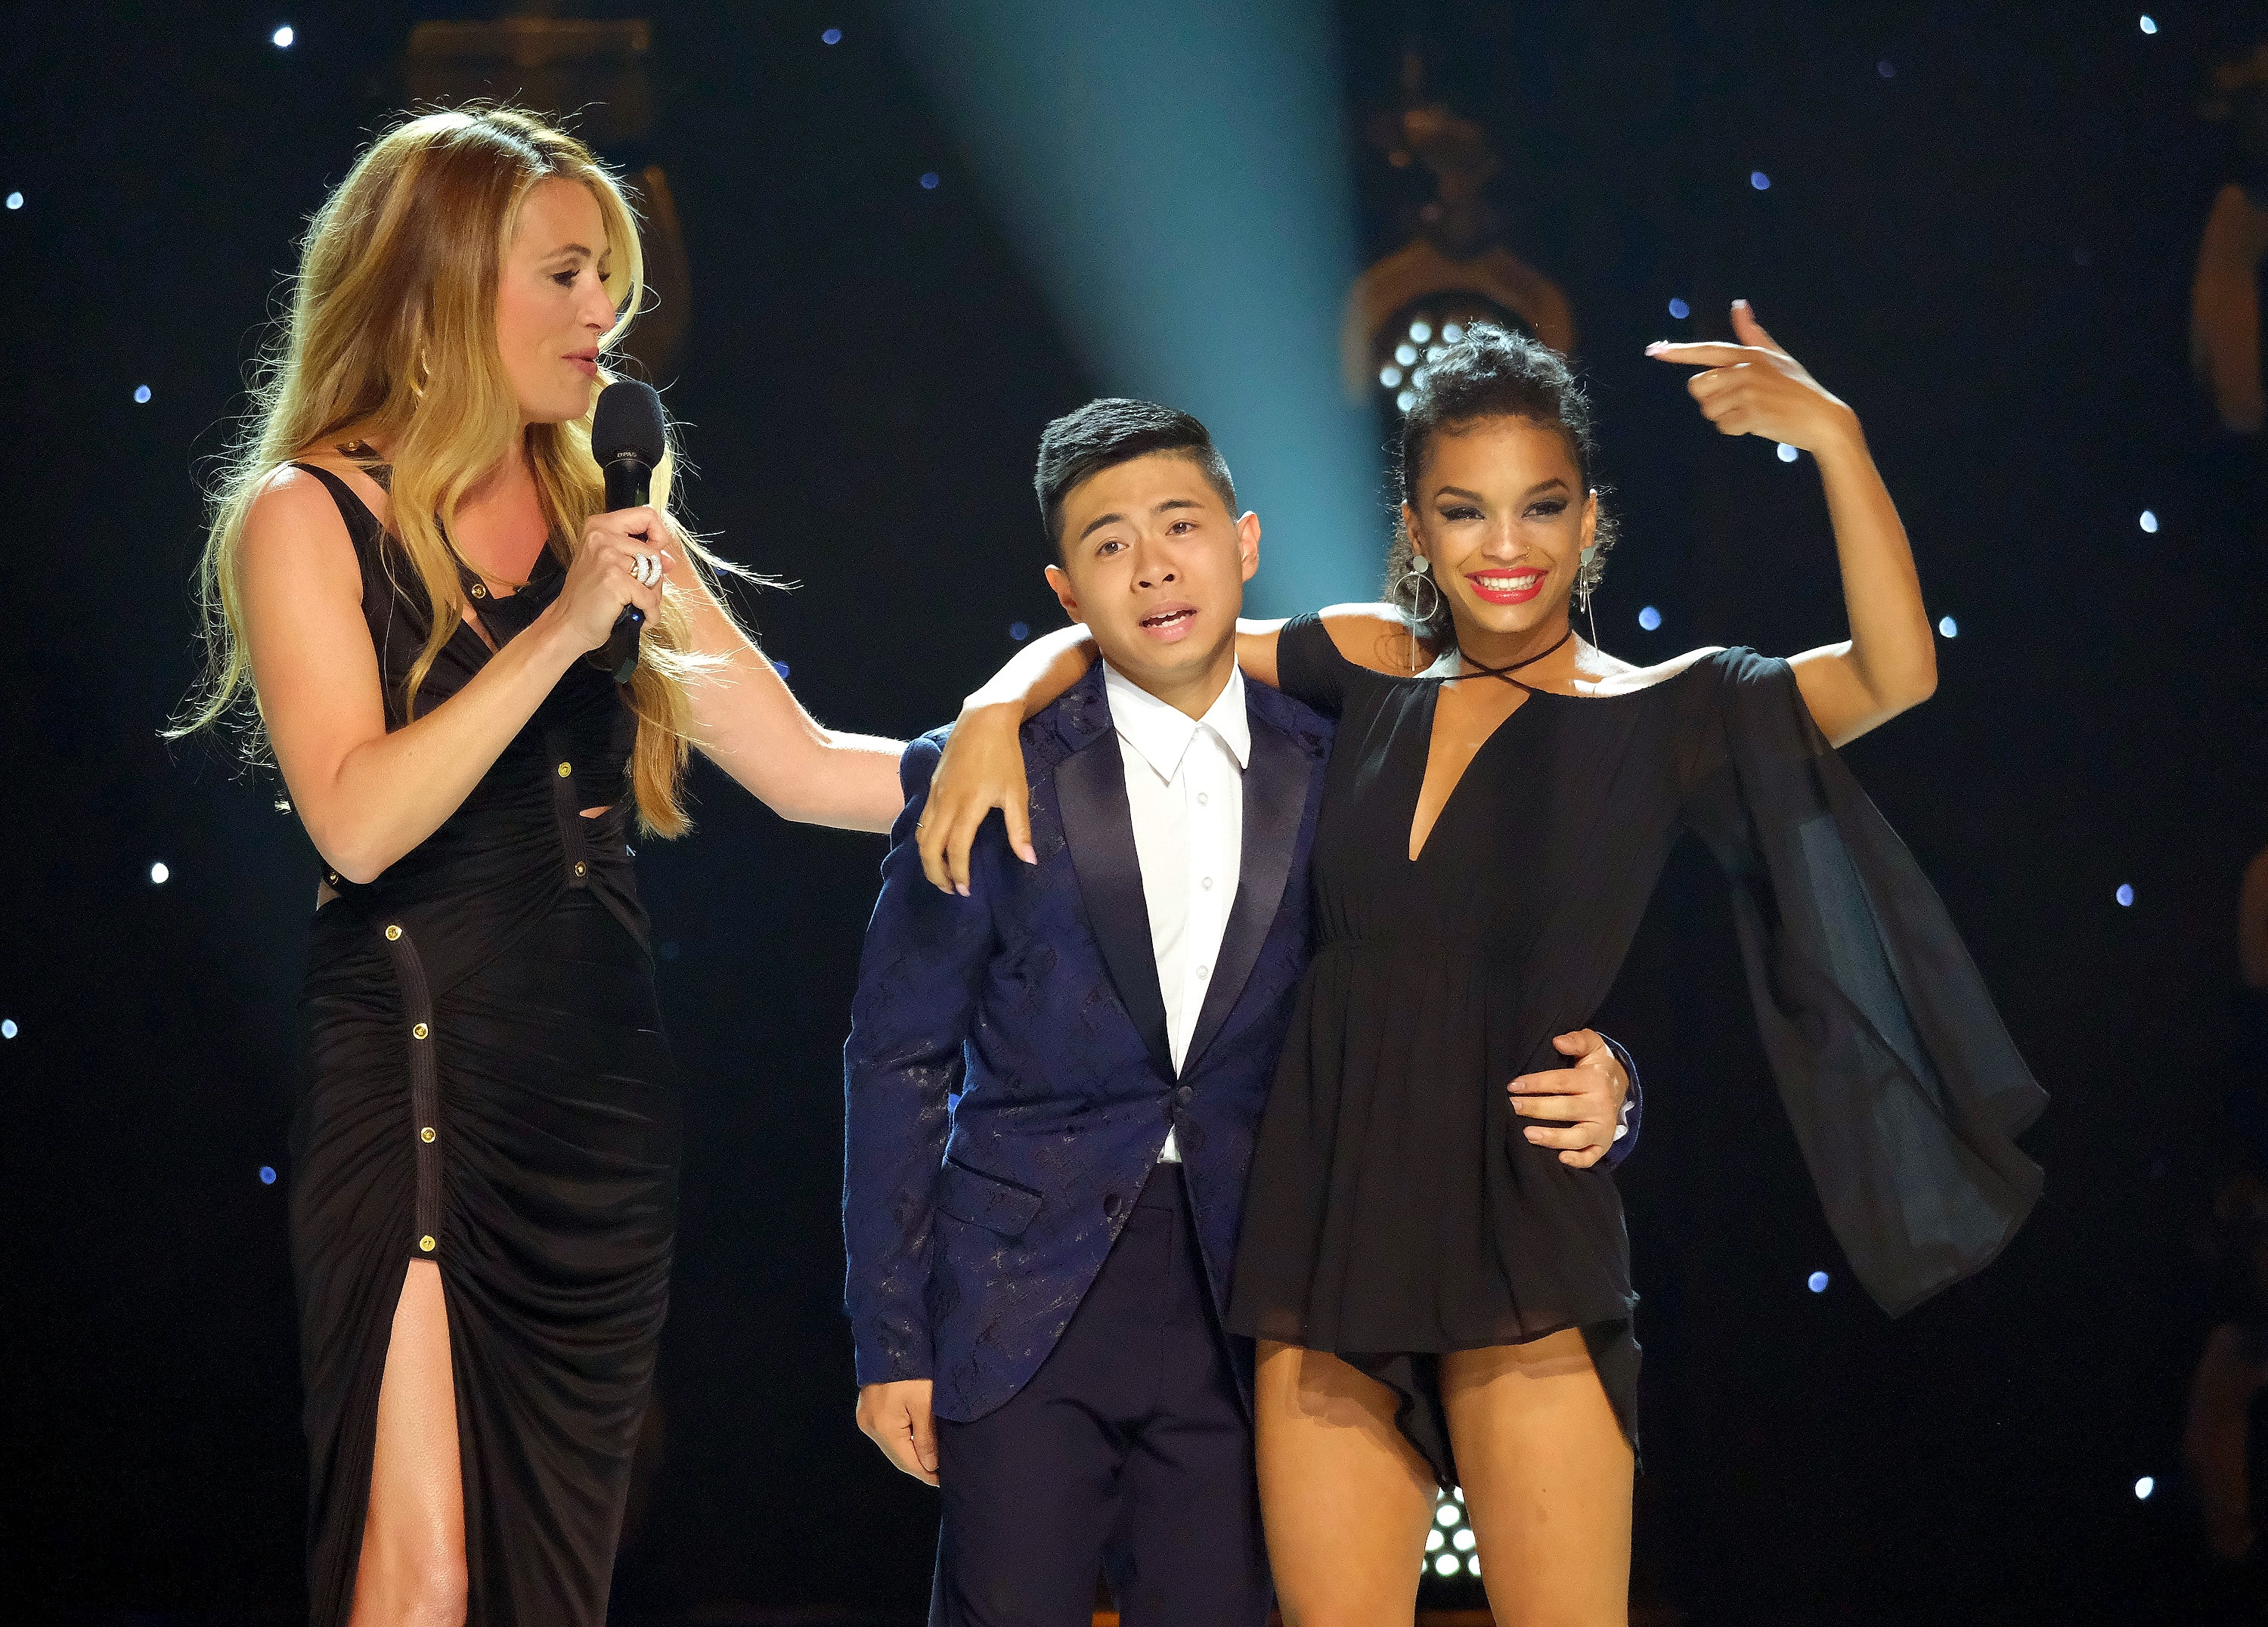 SO YOU THINK YOU CAN DANCE: FINALE: Host Cat Deeley (L) announces Americas favorite dancer Bailey Munoz (C) and runner-up Mariah Russell (R) on the Season Finale of SO YOU THINK YOU CAN DANCE airing live, Monday, Sept. 16 (8:00-10:00 PM ET/PT) on FOX. (Photo by FOX via Getty Images)